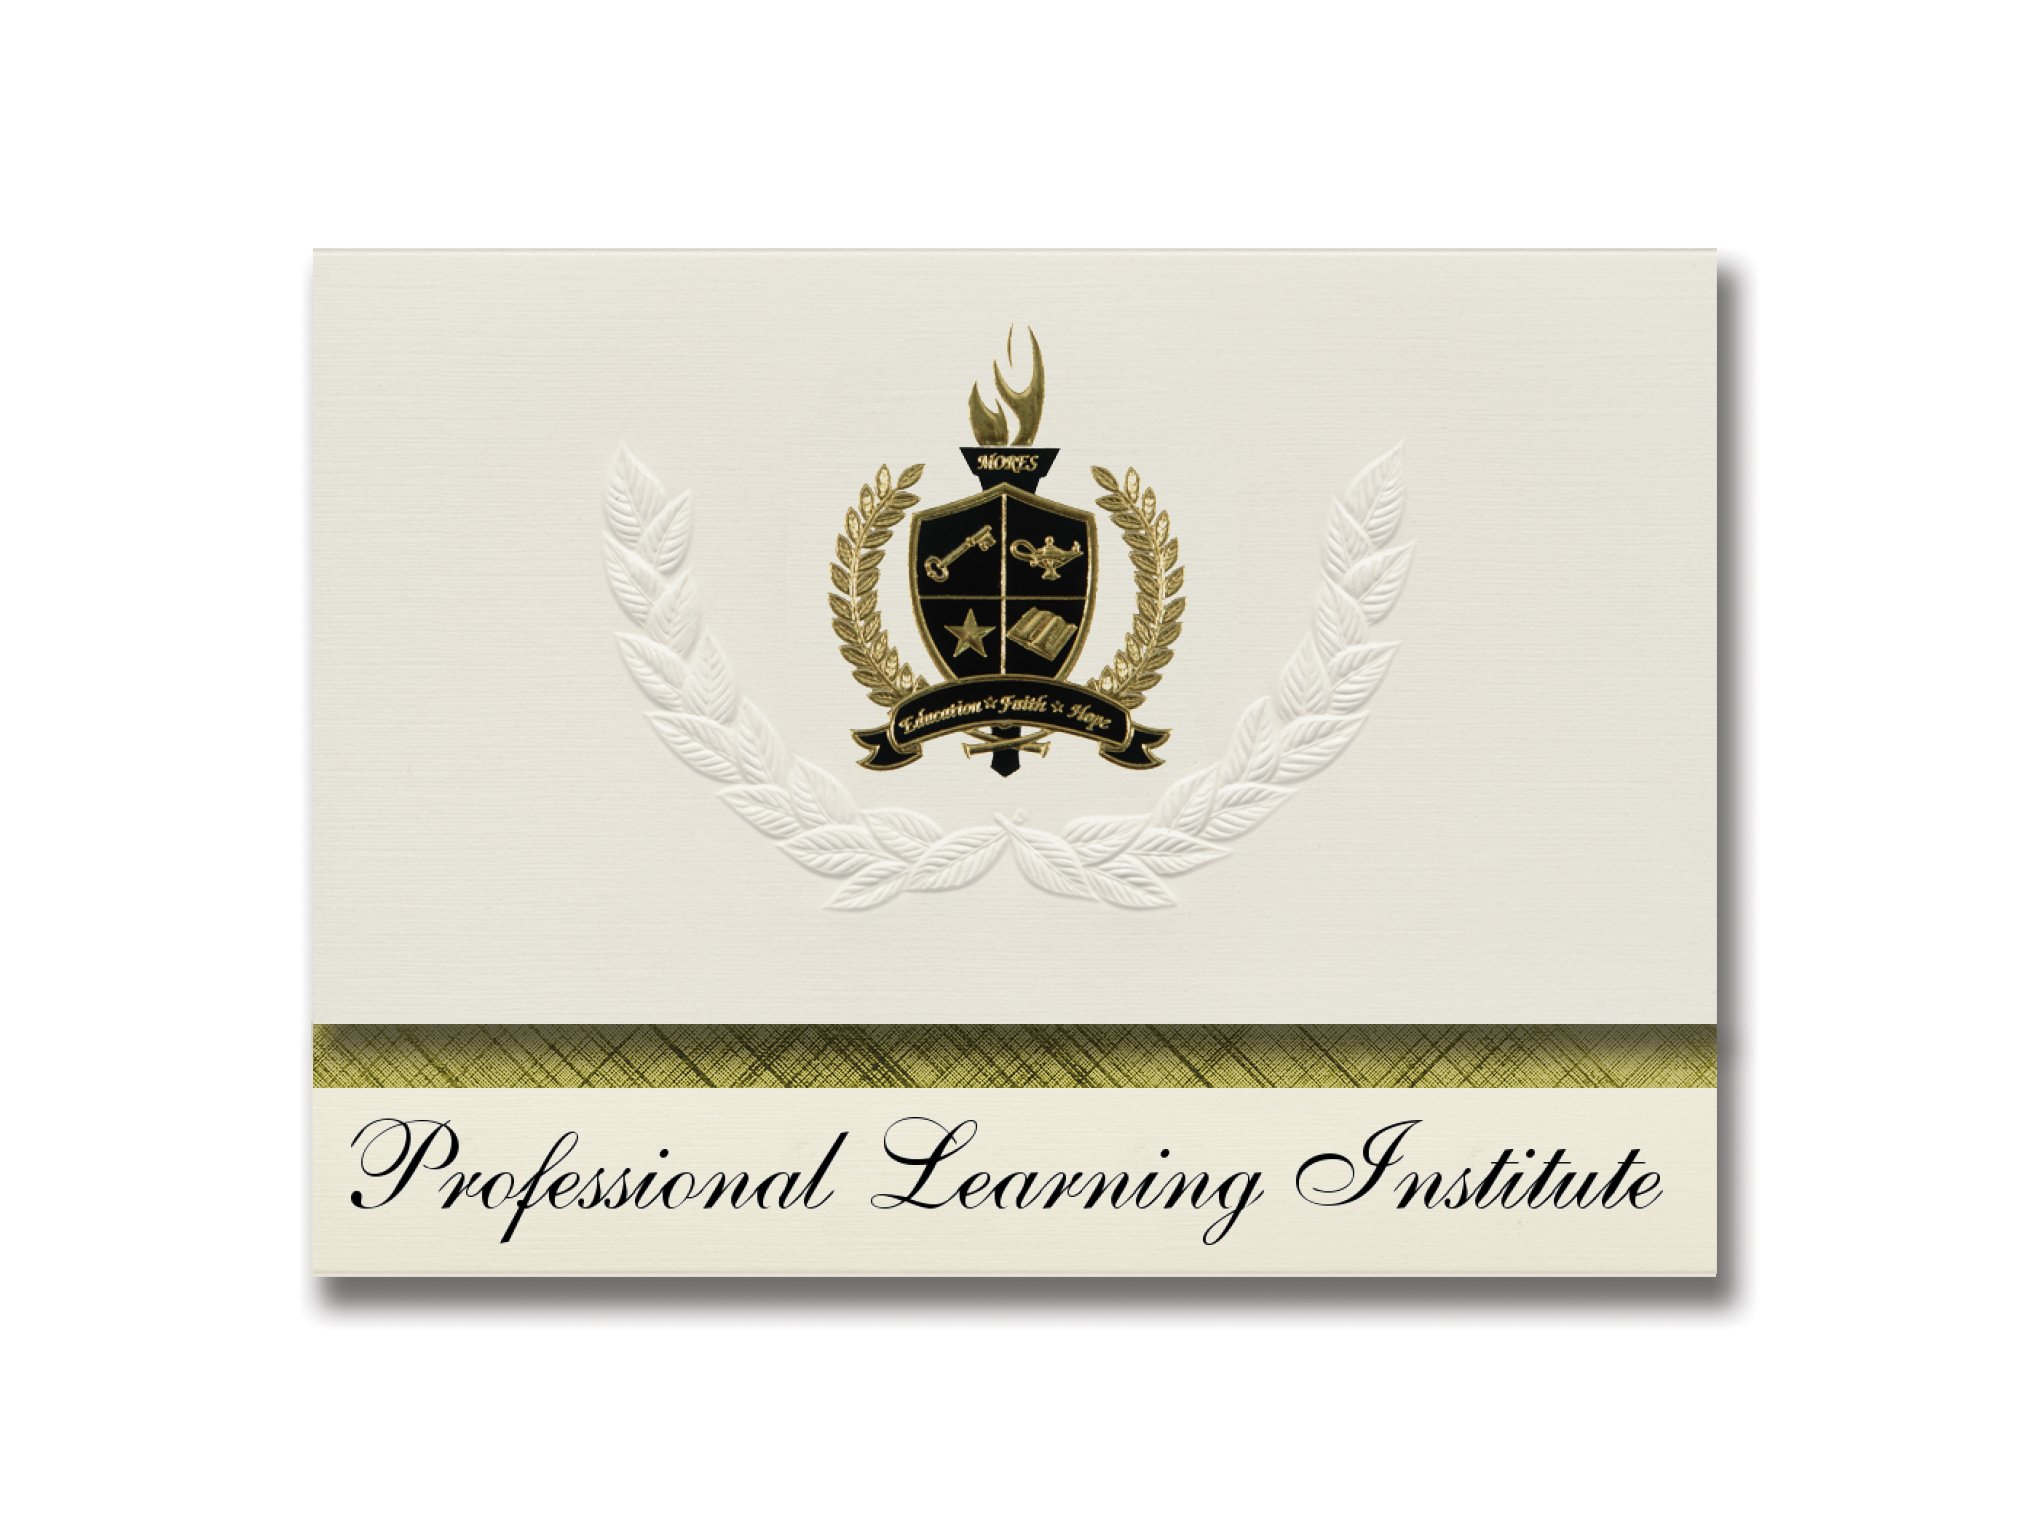 Signature Announcements Elite Learning Institute (Milwaukee, WI) Graduation Announcements, Presidential style, Elite package of 25 with Gold & Black Metallic Foil seal